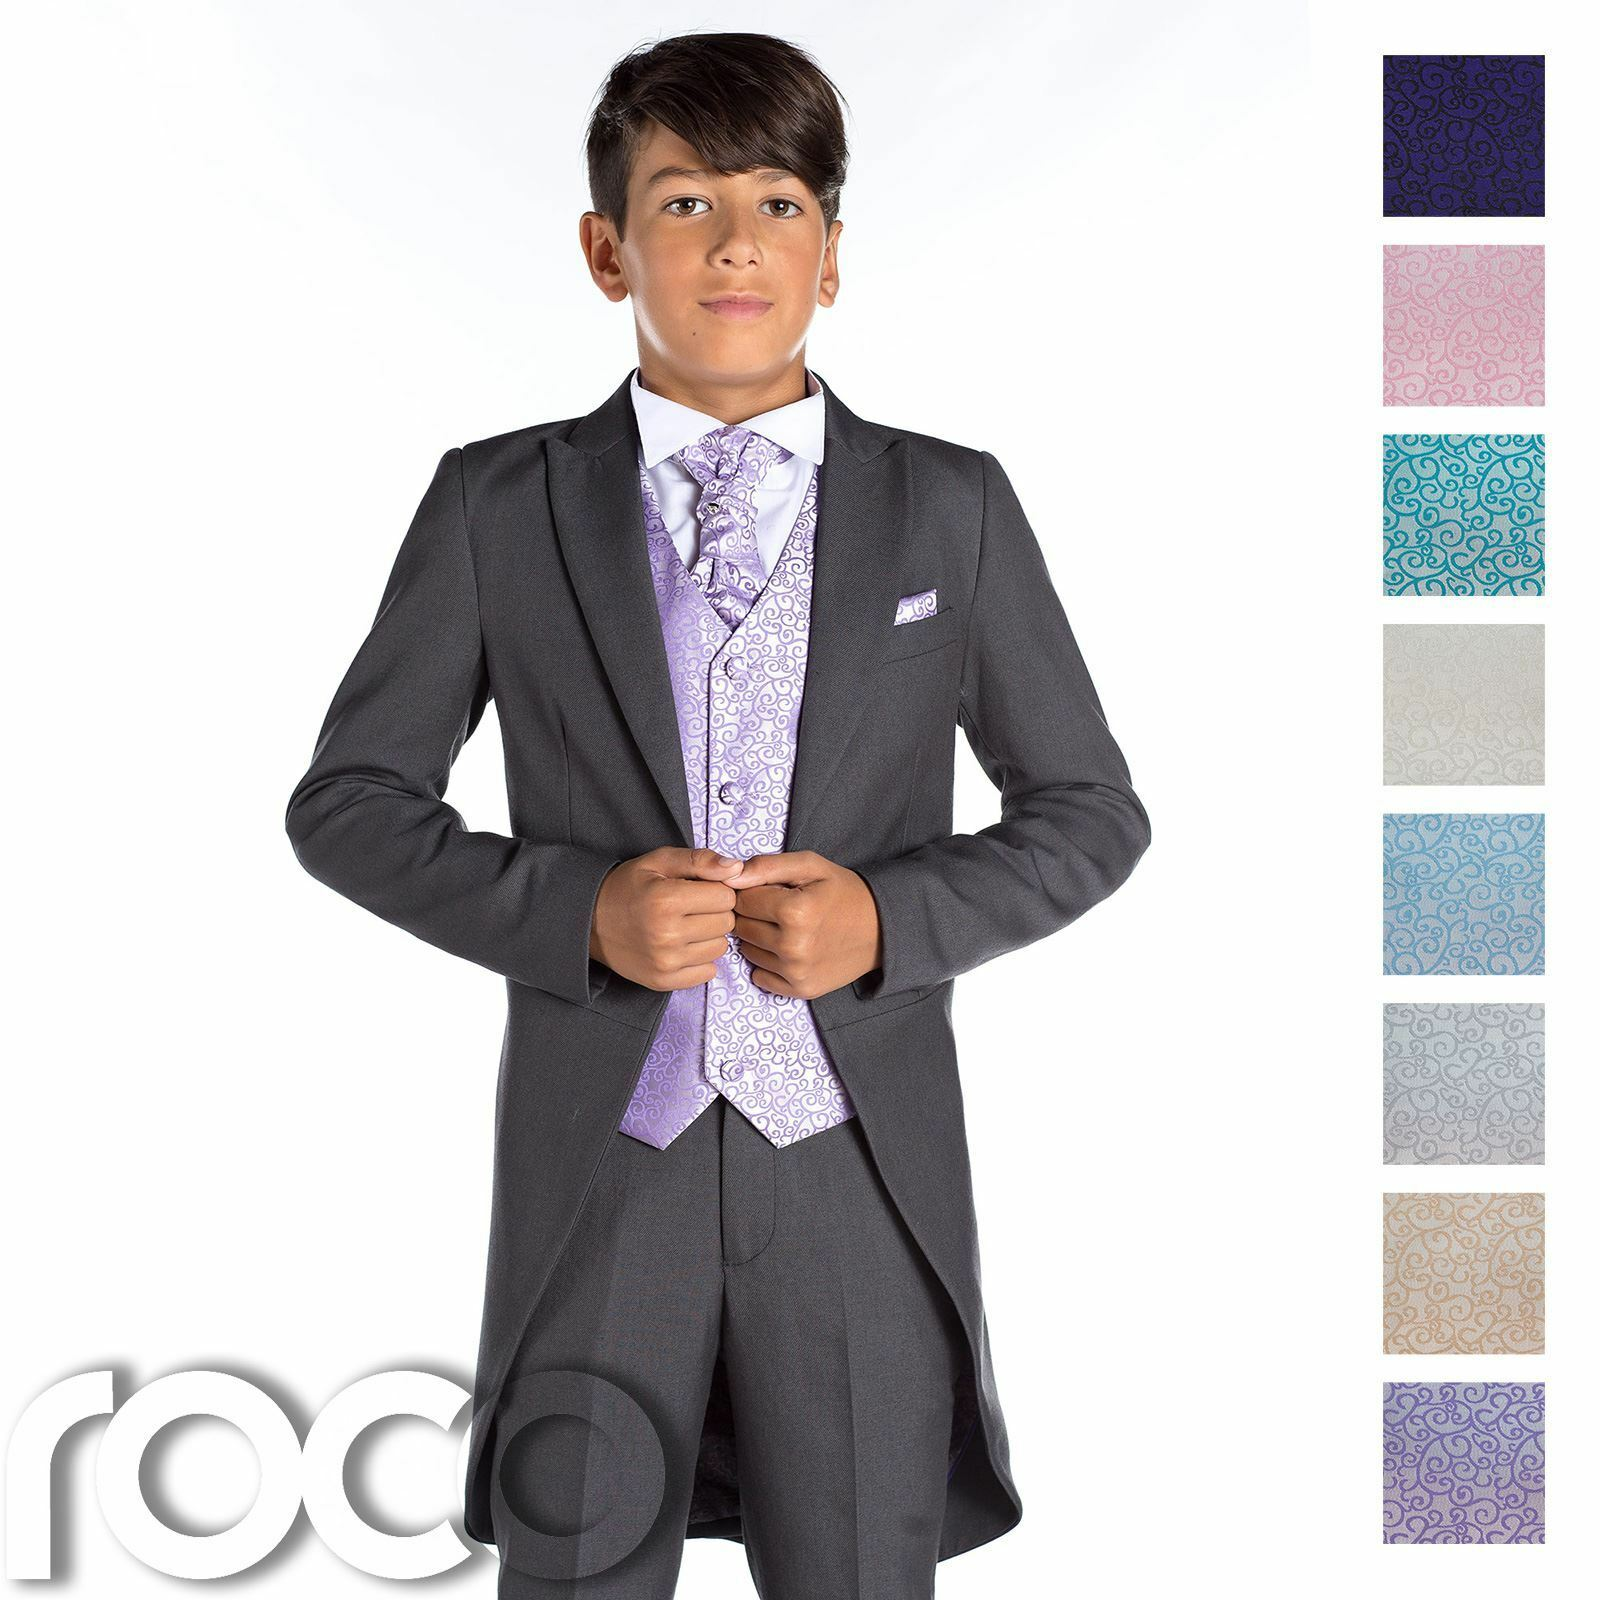 Contemporary Boys Wedding Outfits Pictures - Wedding Dress Ideas ...